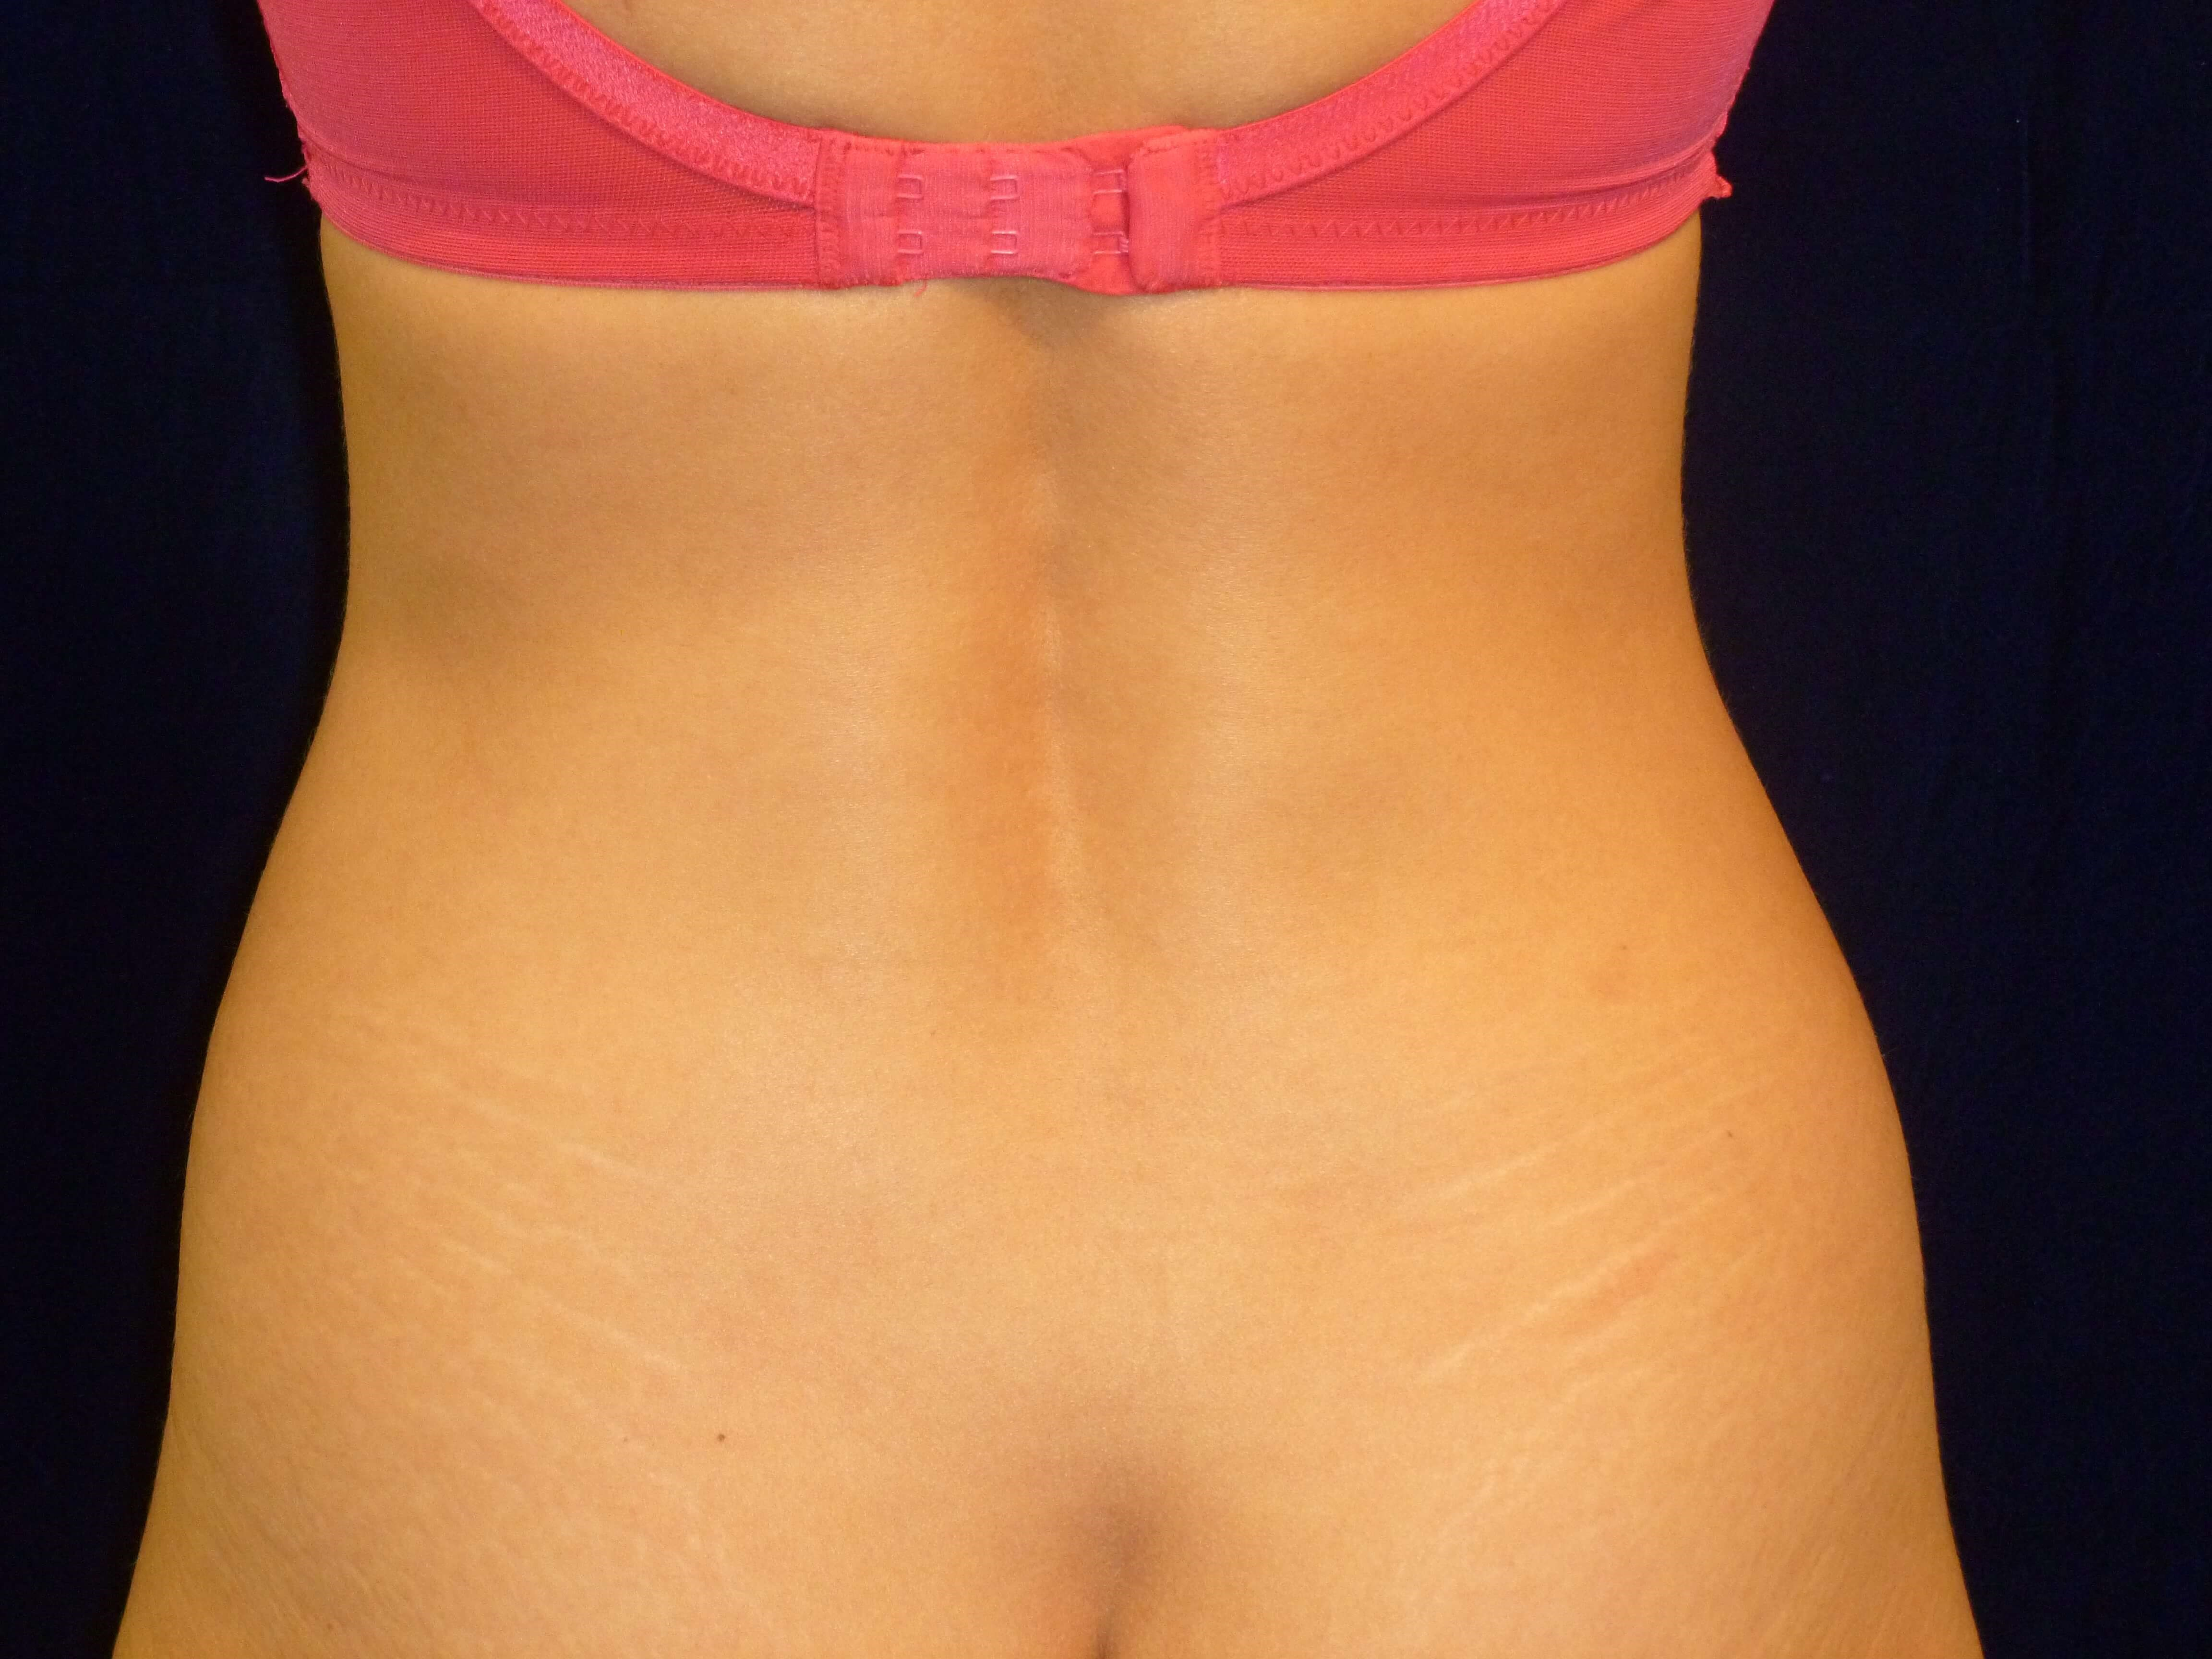 Liposuction Abdomen and Hips Before